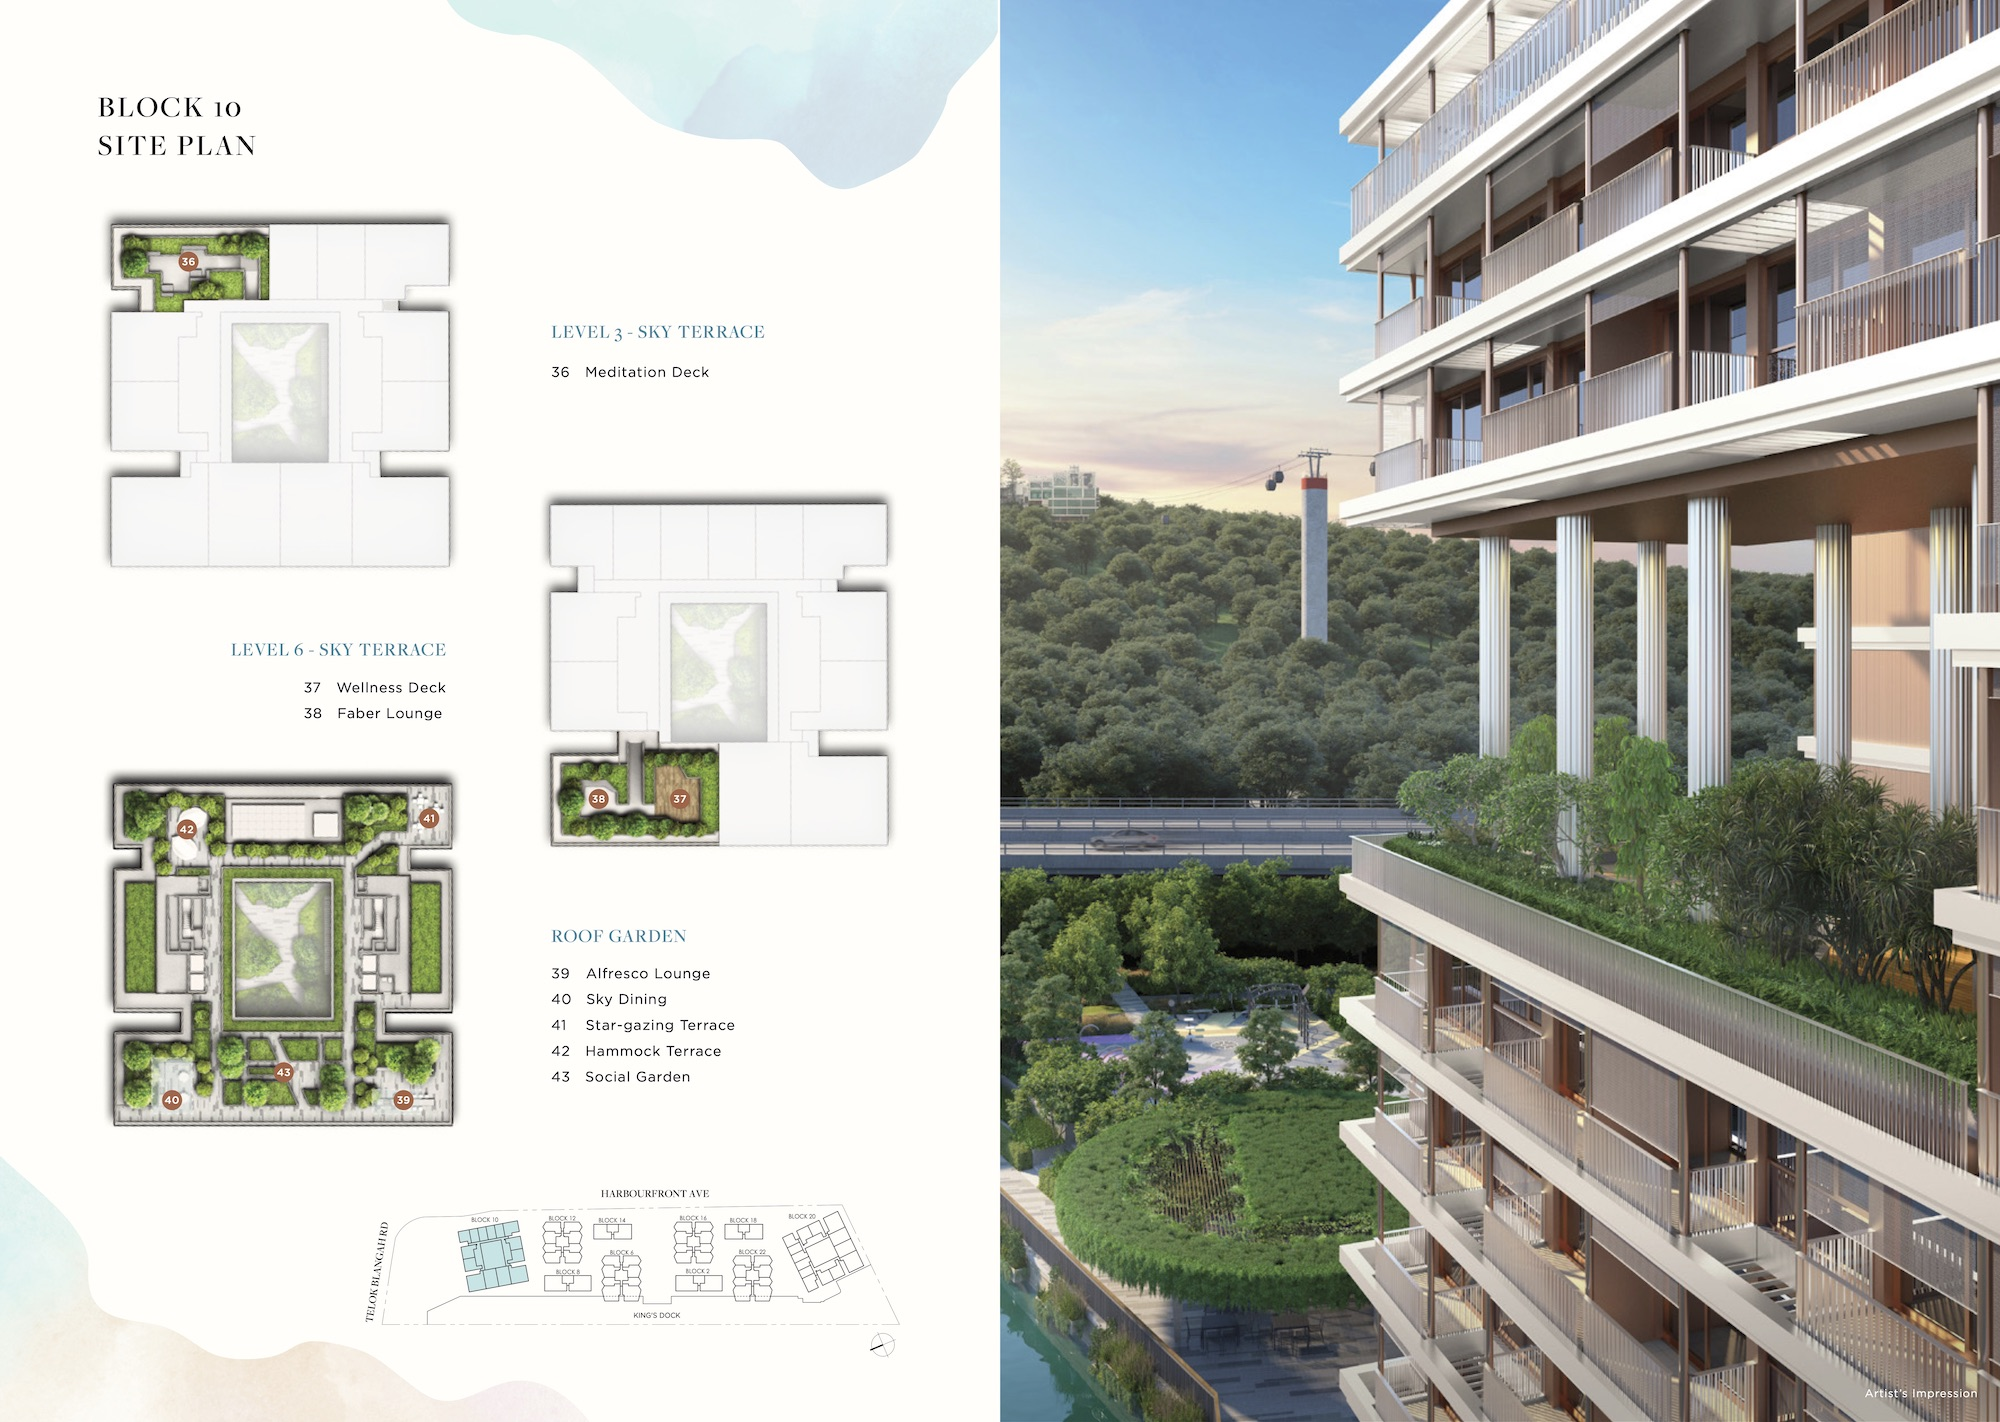 The Reef at King's Dock Site Plan 2